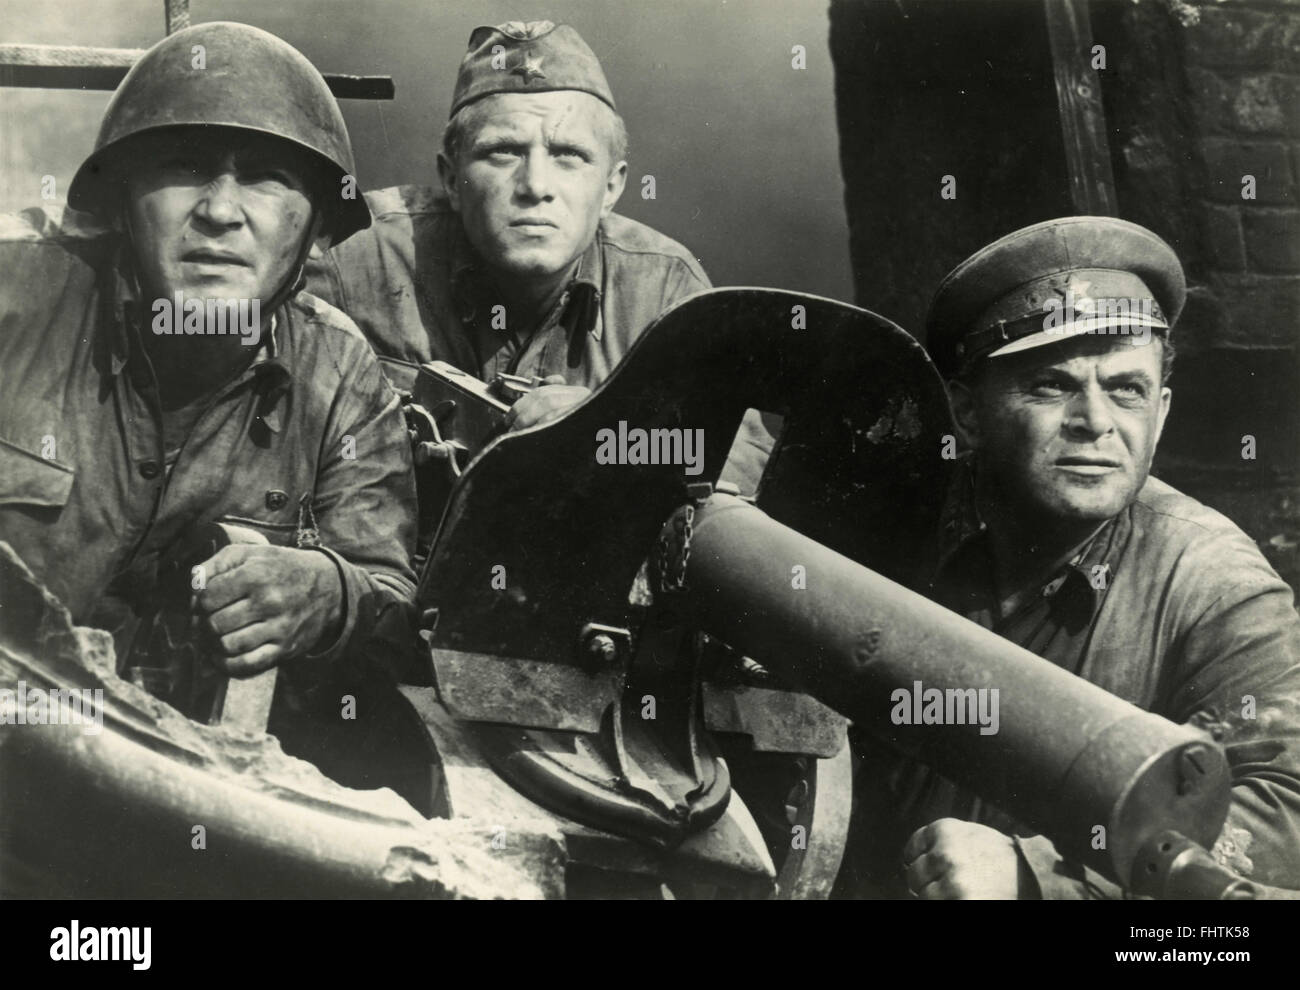 The actor Steve McQueen in one scene of the film Hell is for Heroes, USA 1962 - Stock Image